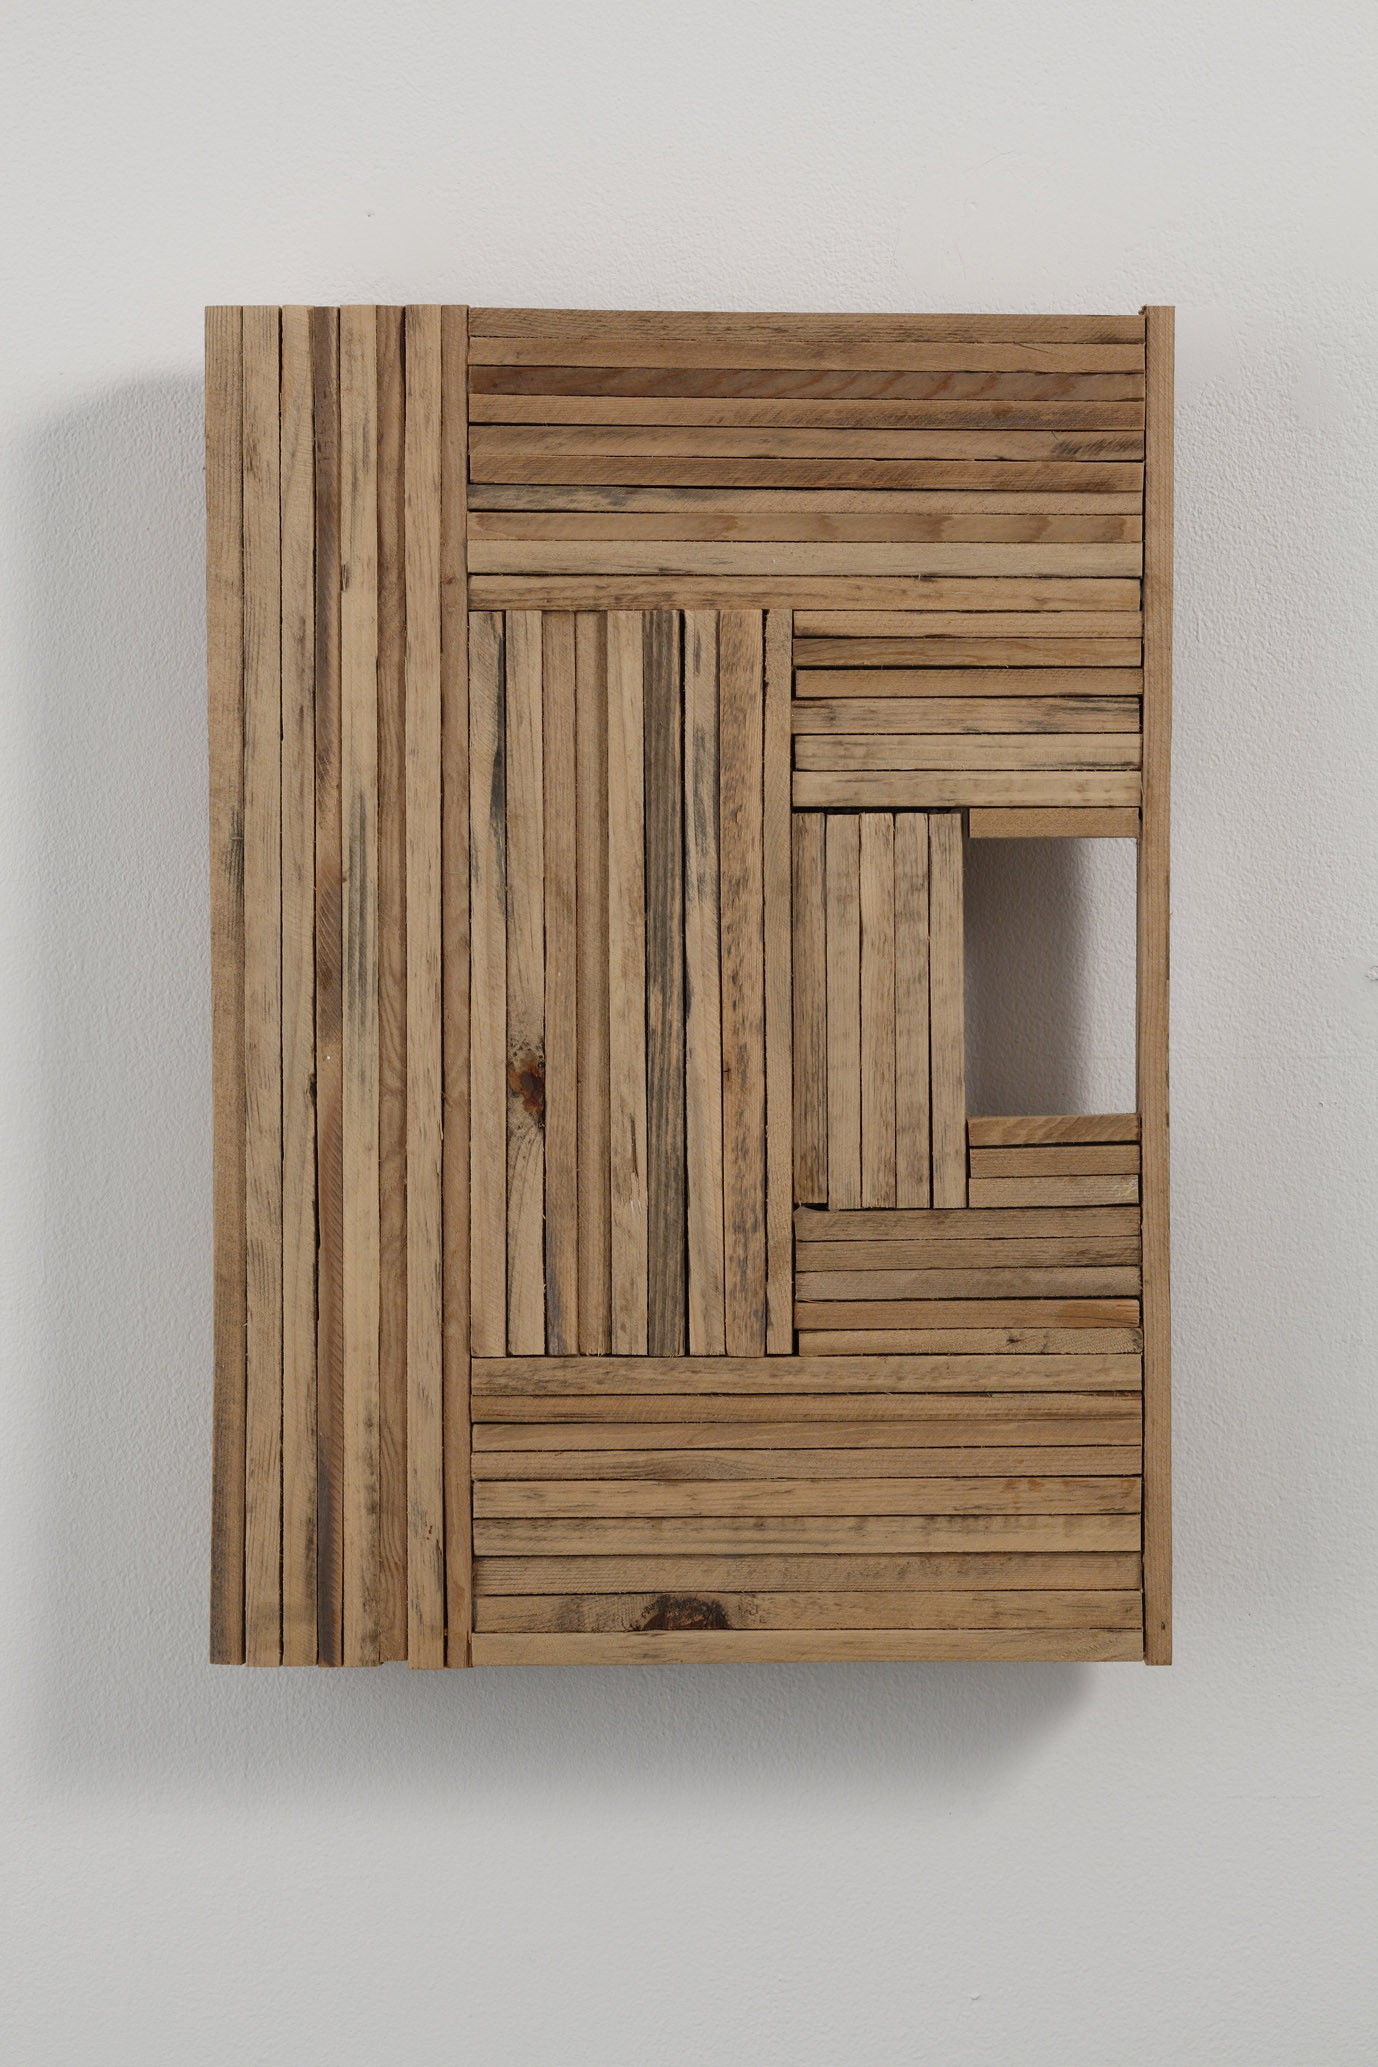 State of Gathered Space , 2001-2002 多空体 ( Takūtai ) Wood 17 3/4 x 12 1/2 x 2 15/16 inches 45 x 32 x 7.5 cm